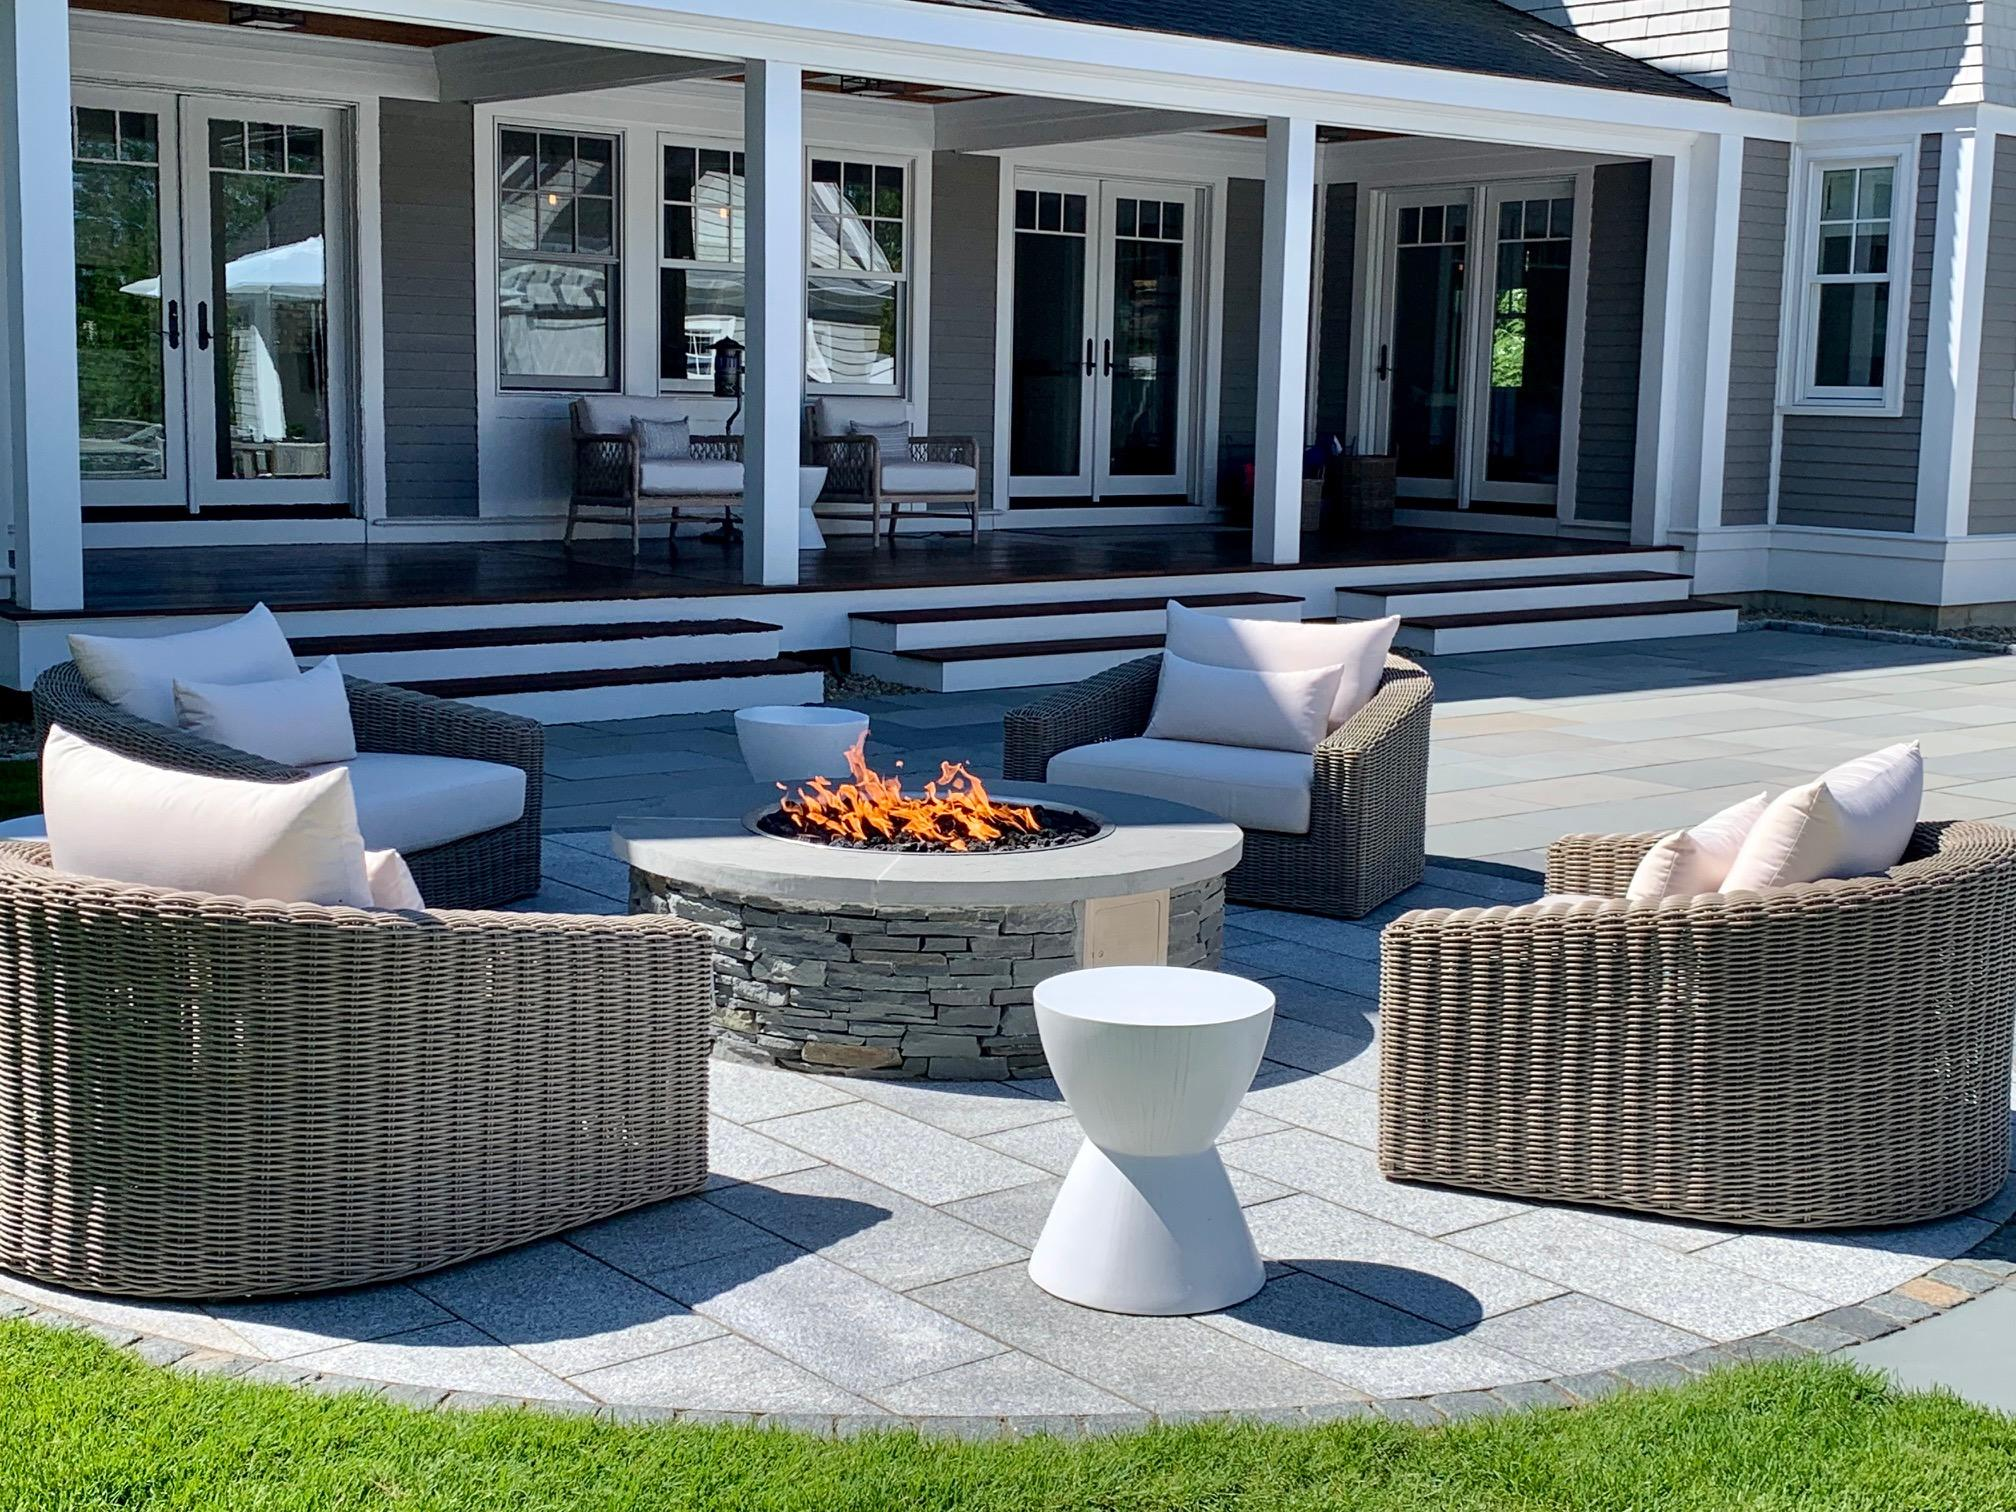 paved fire pit area